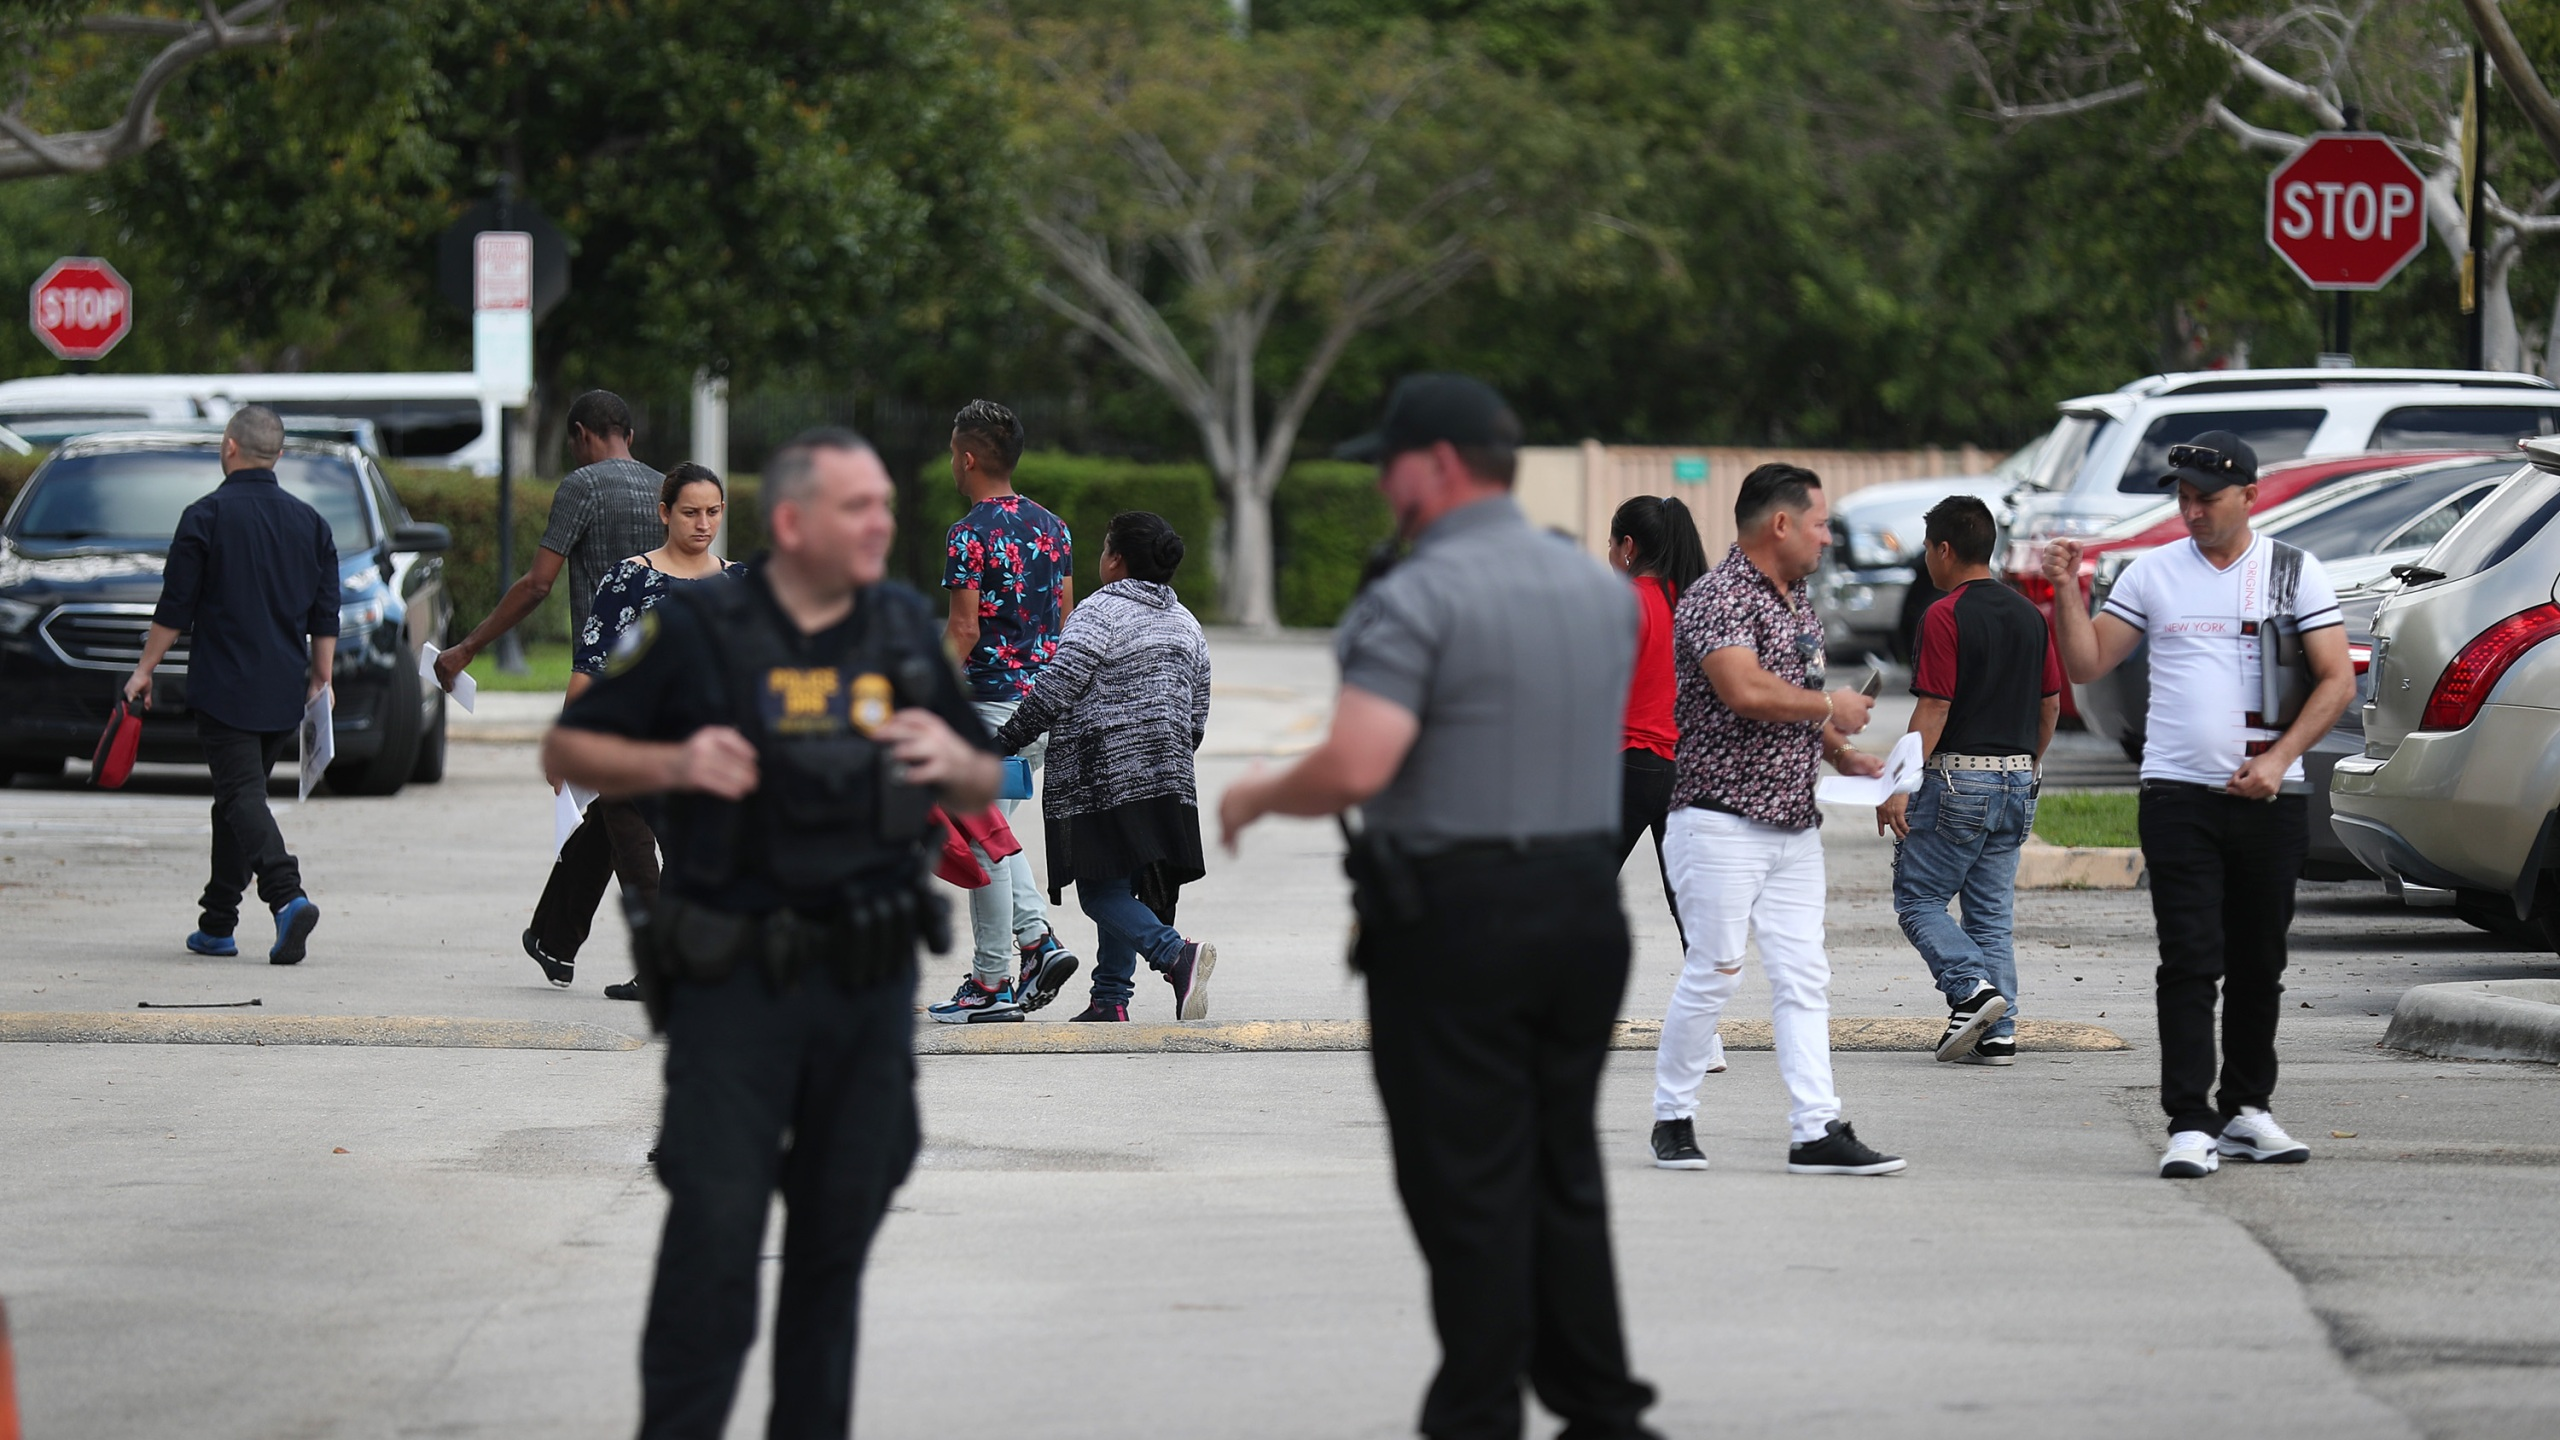 People walk through the parking lot outside the U.S. Immigration and Customs Enforcement office in Miramar, Florida, on March 13, 2020. (Credit: Joe Raedle / Getty Images)